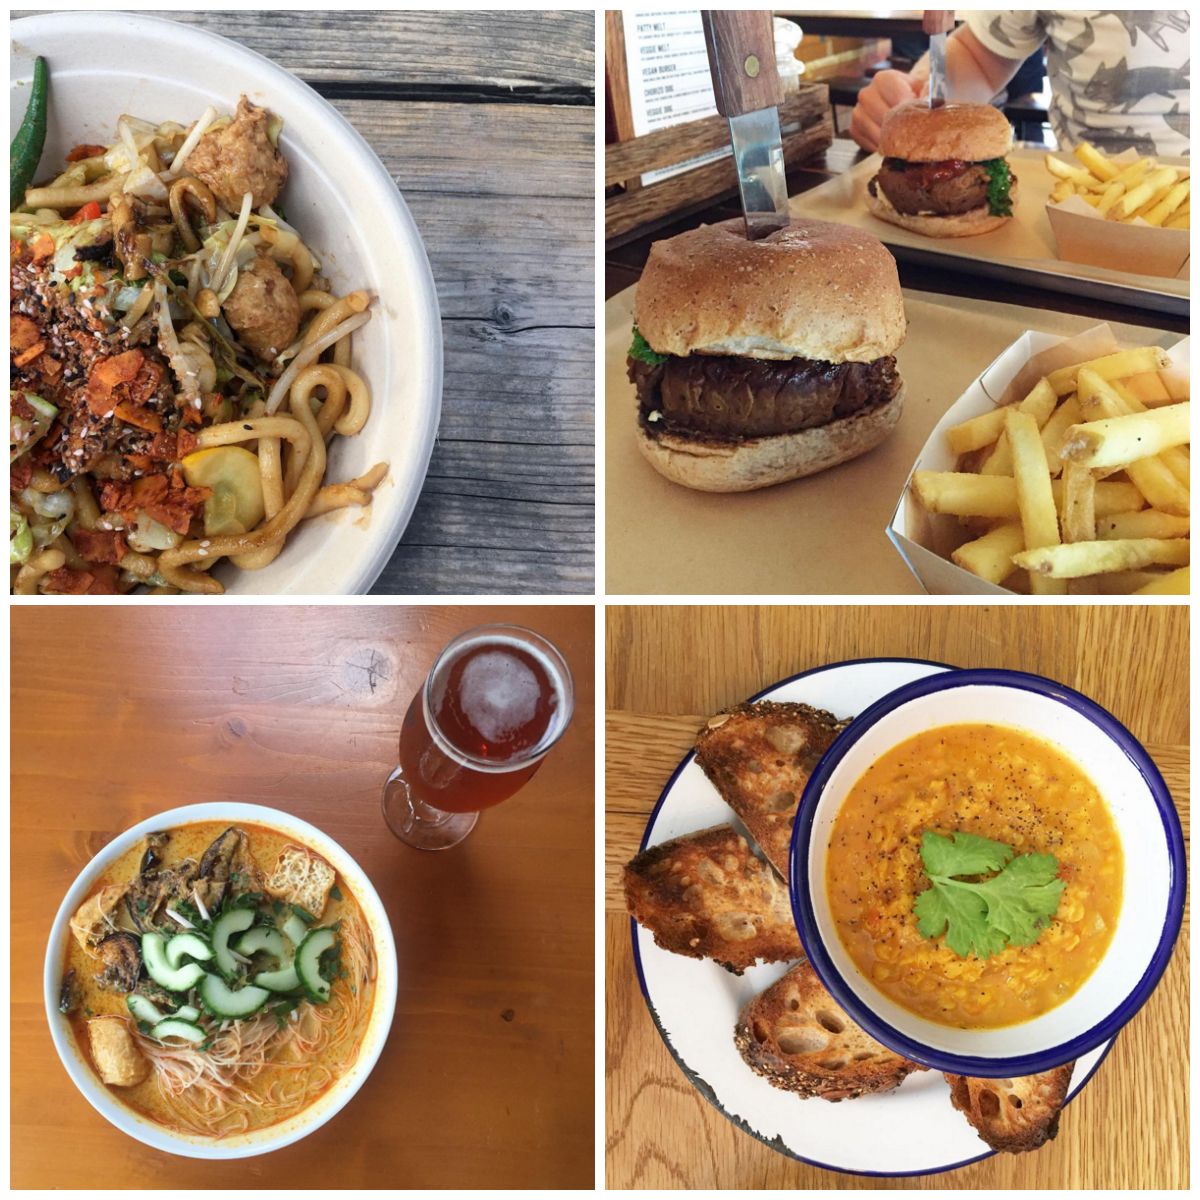 Conversation Pieces' London vegan guide